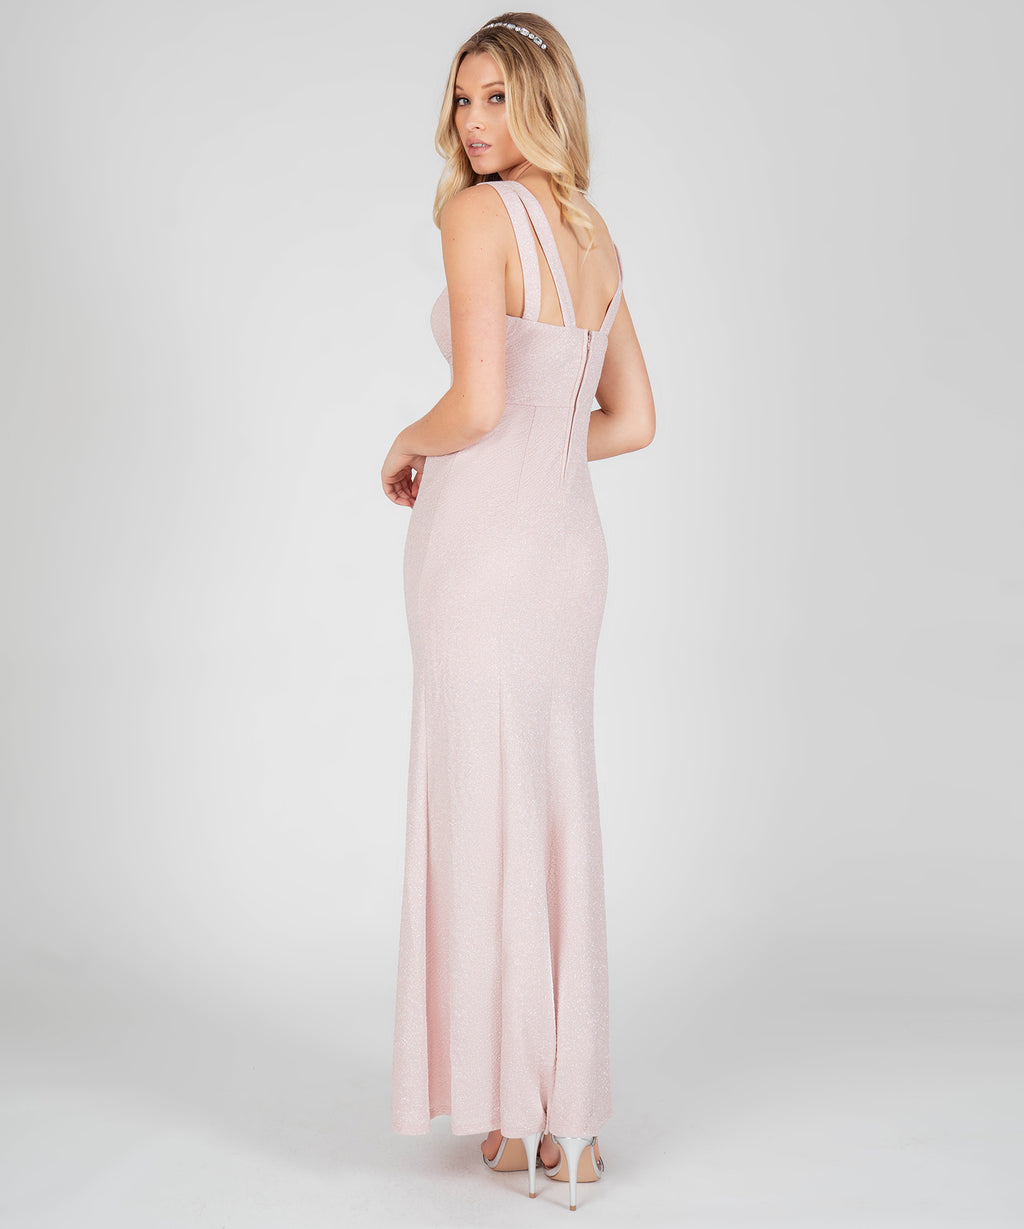 Margot Trumpet Dress